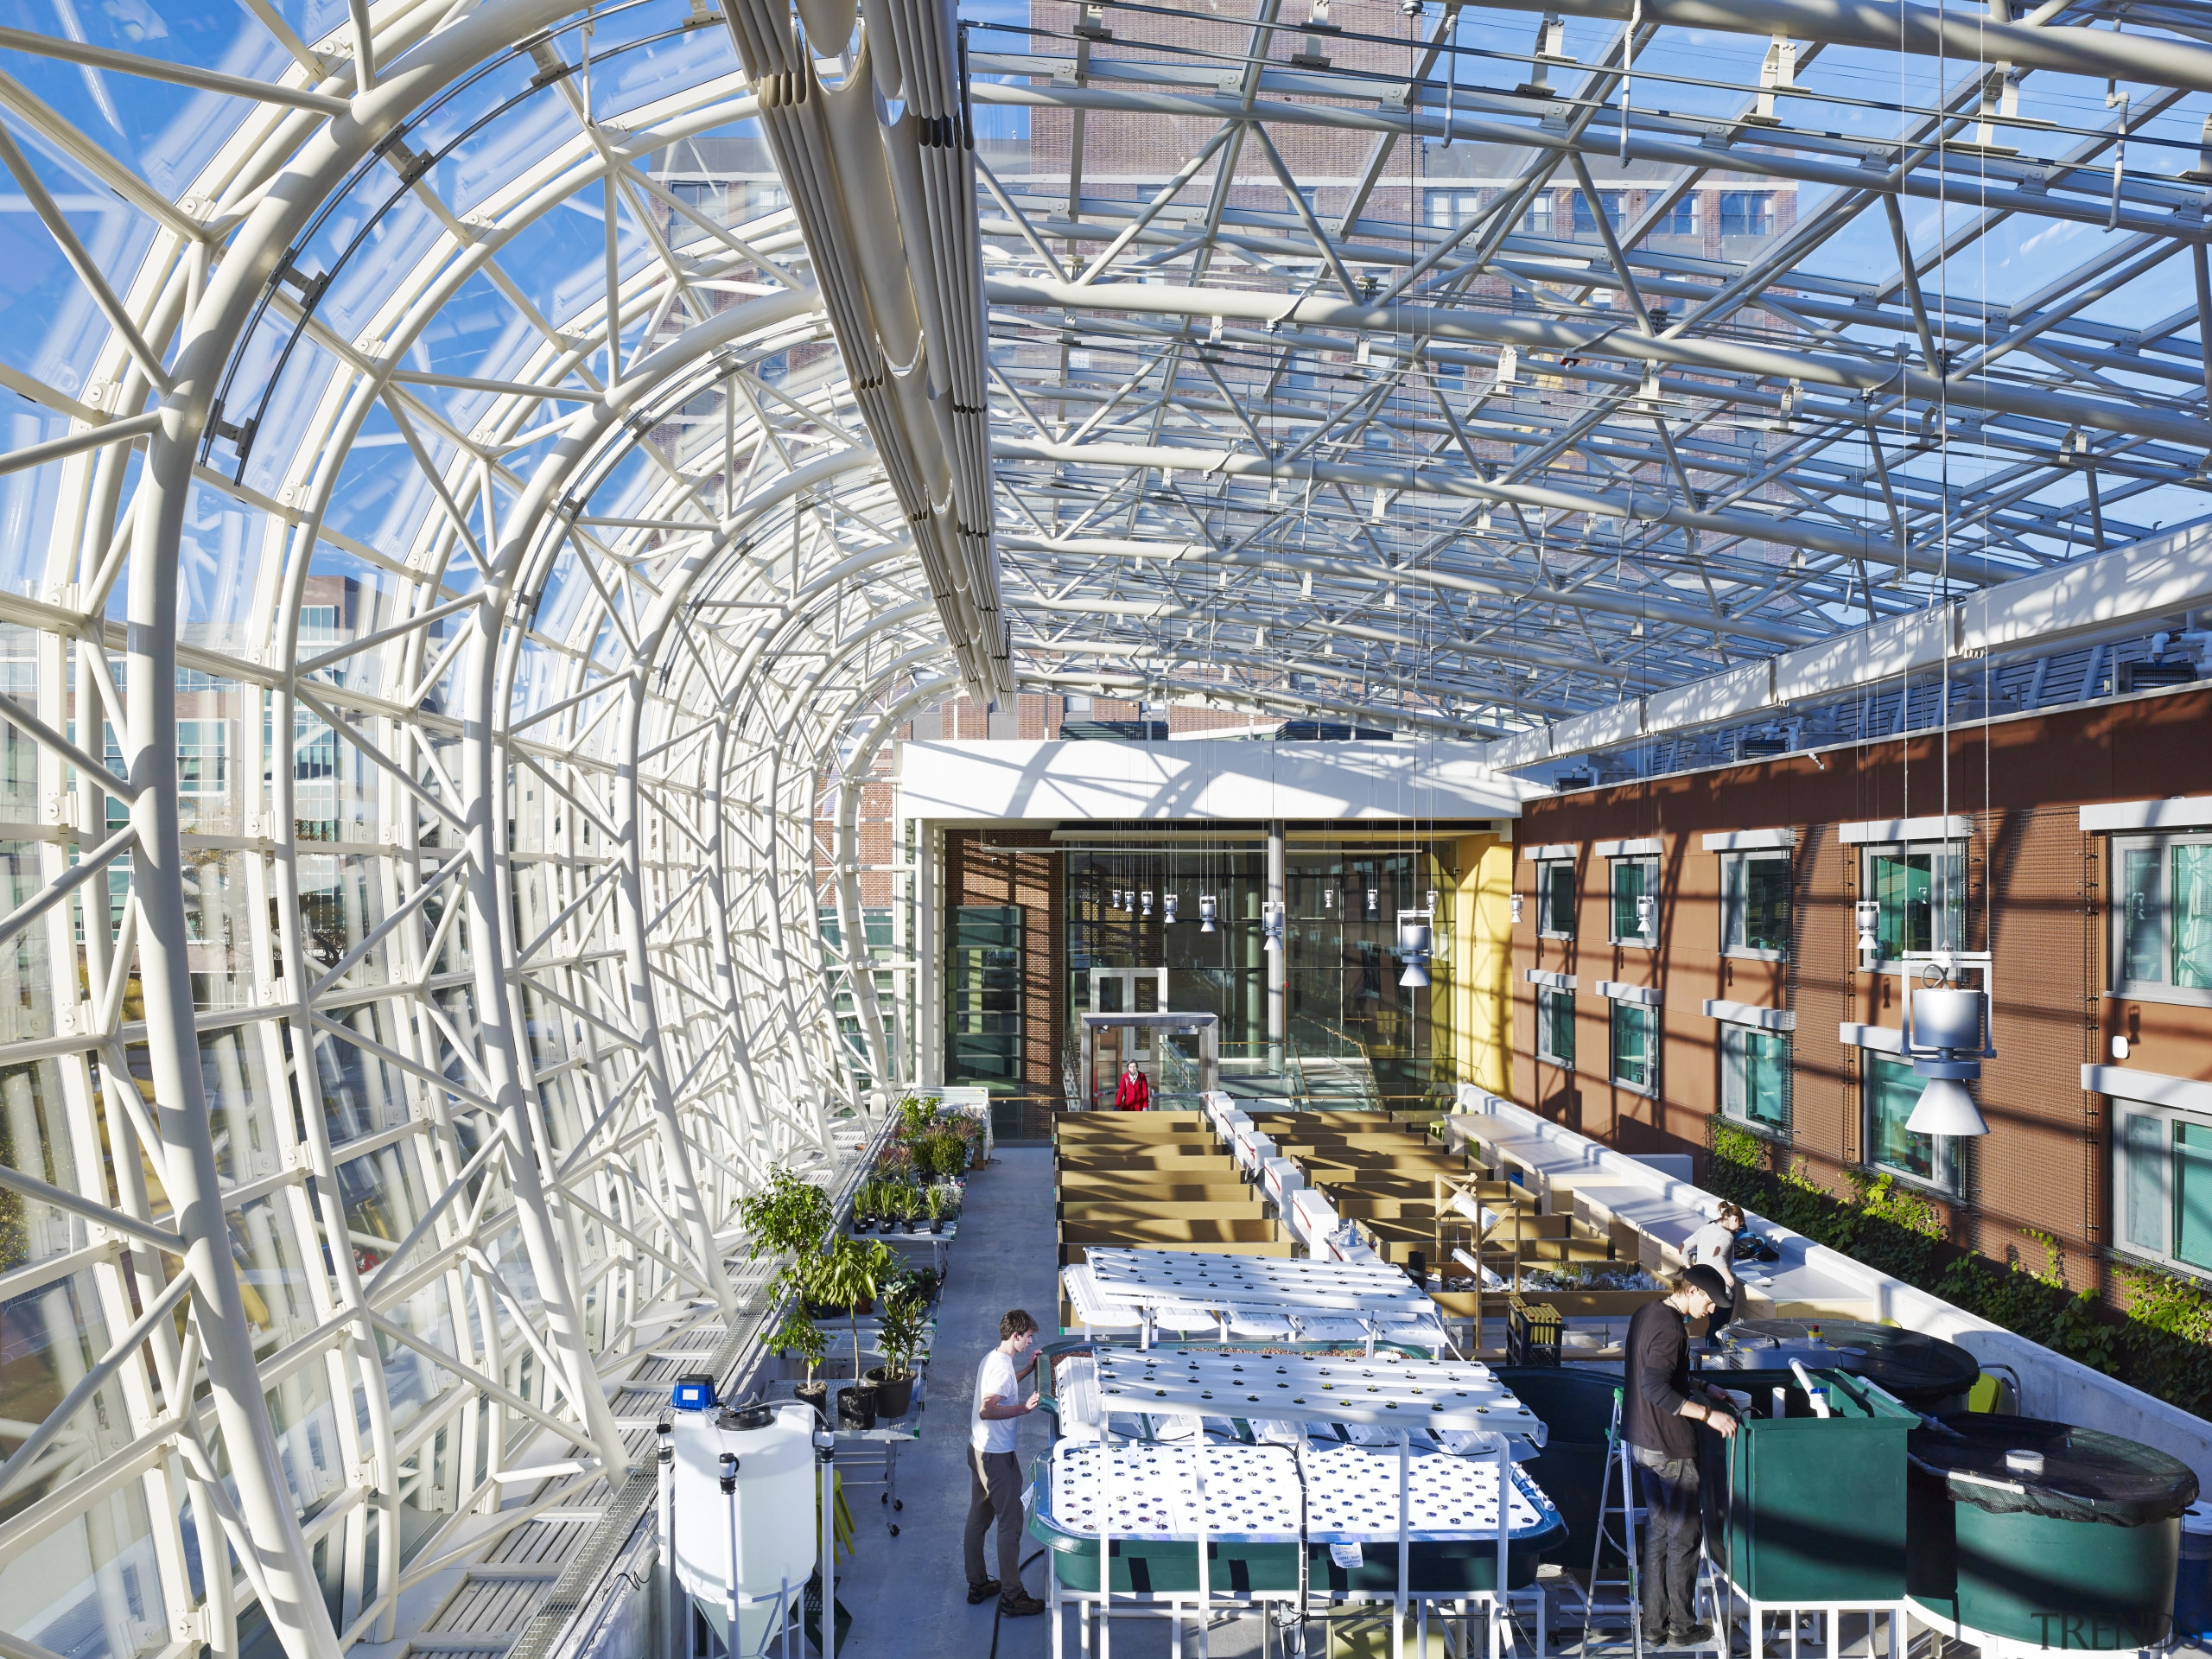 Work in the Ecodome at the Institute of daylighting, greenhouse, mixed use, real estate, roof, structure, gray